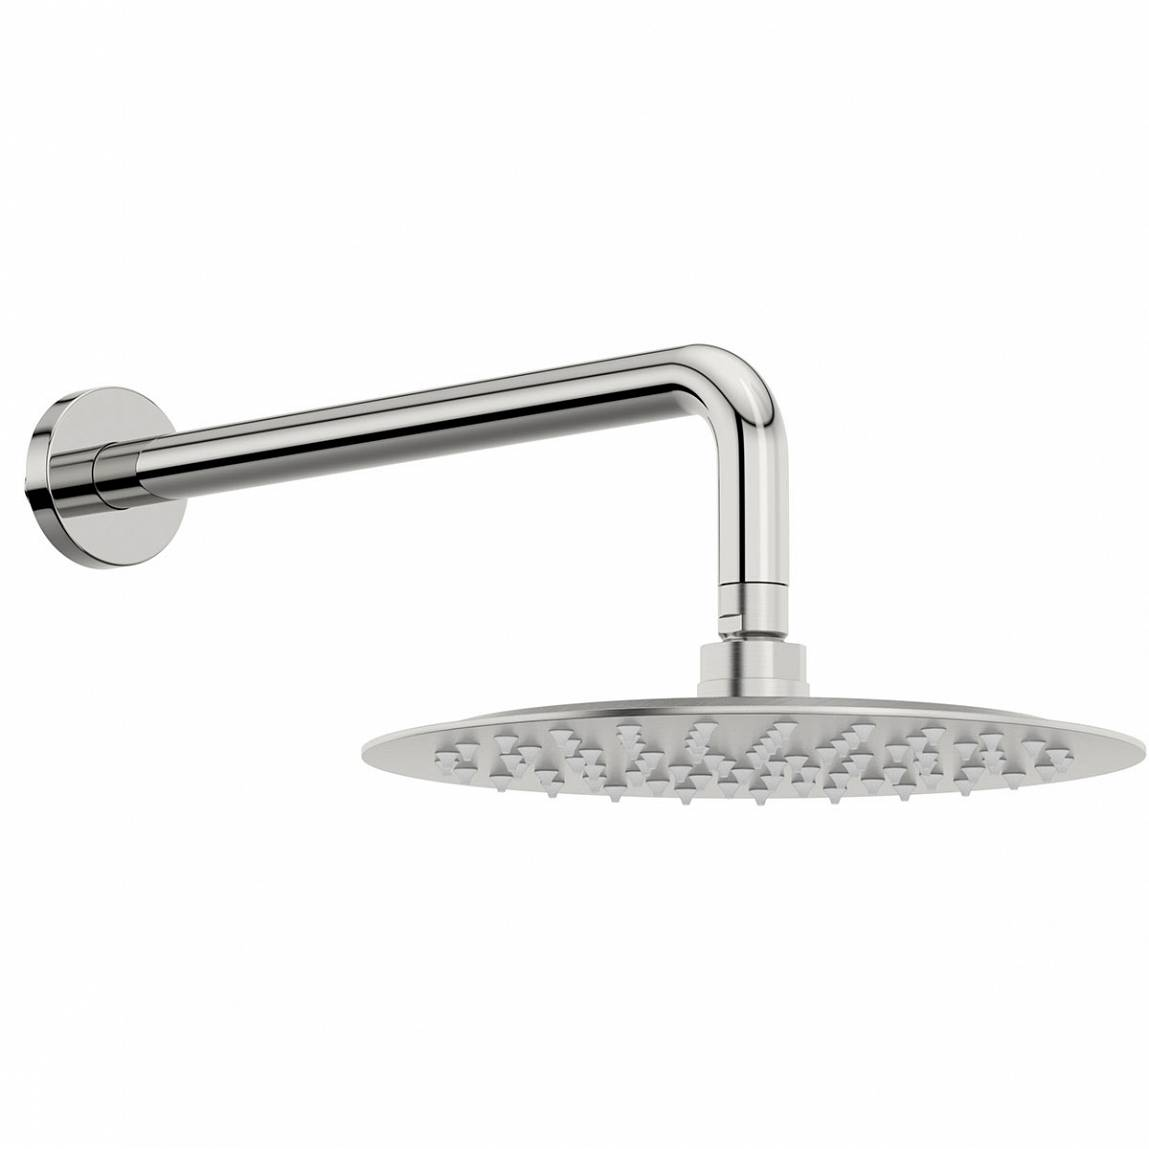 Image of Cirrus 250mm Shower Head & Curved Wall Arm